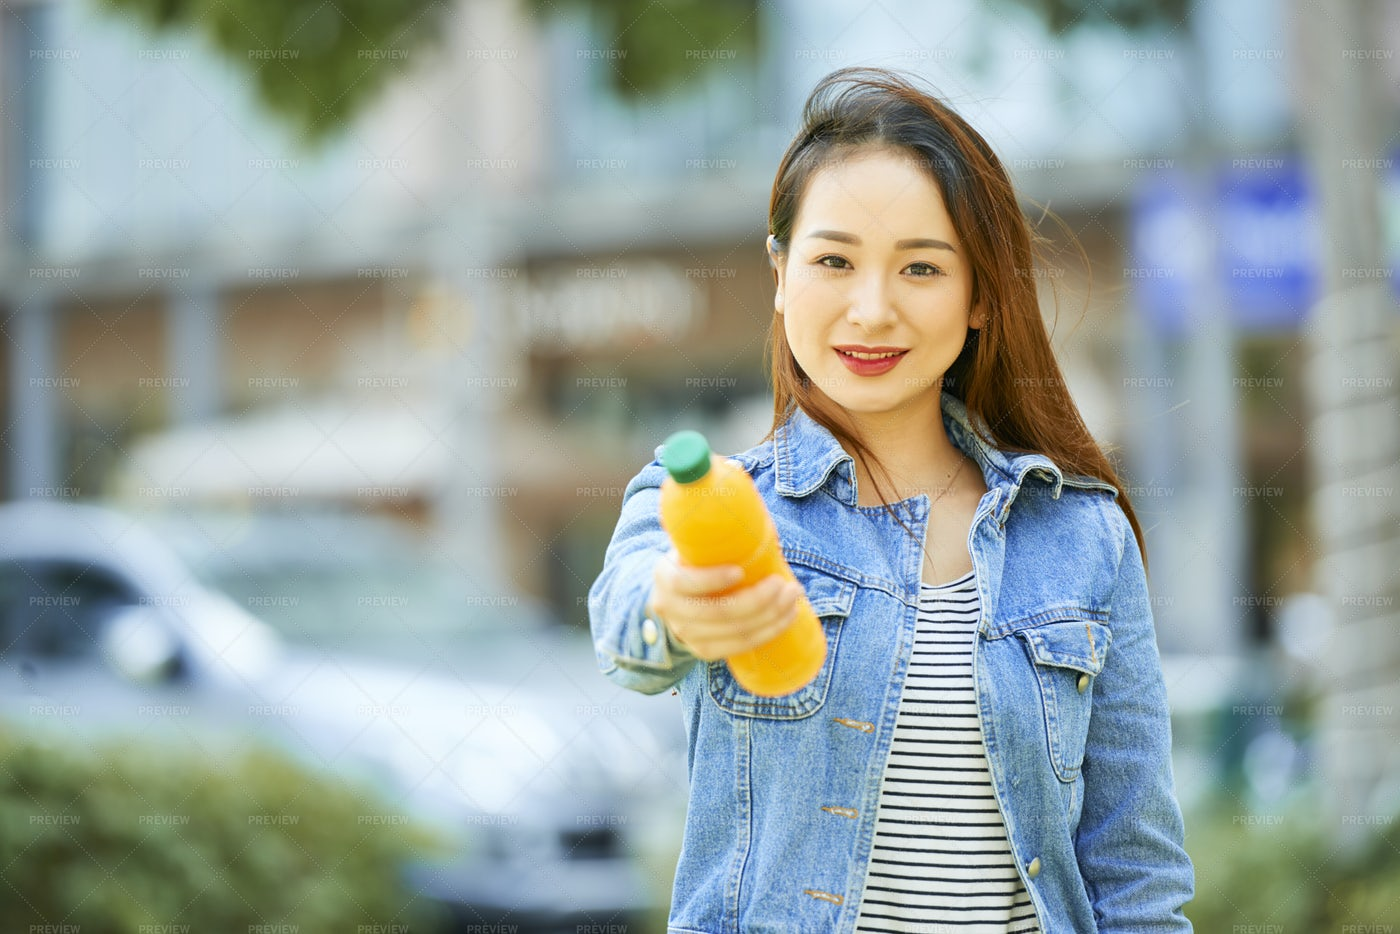 Positive Woman Giving Bottle Or Juice: Stock Photos